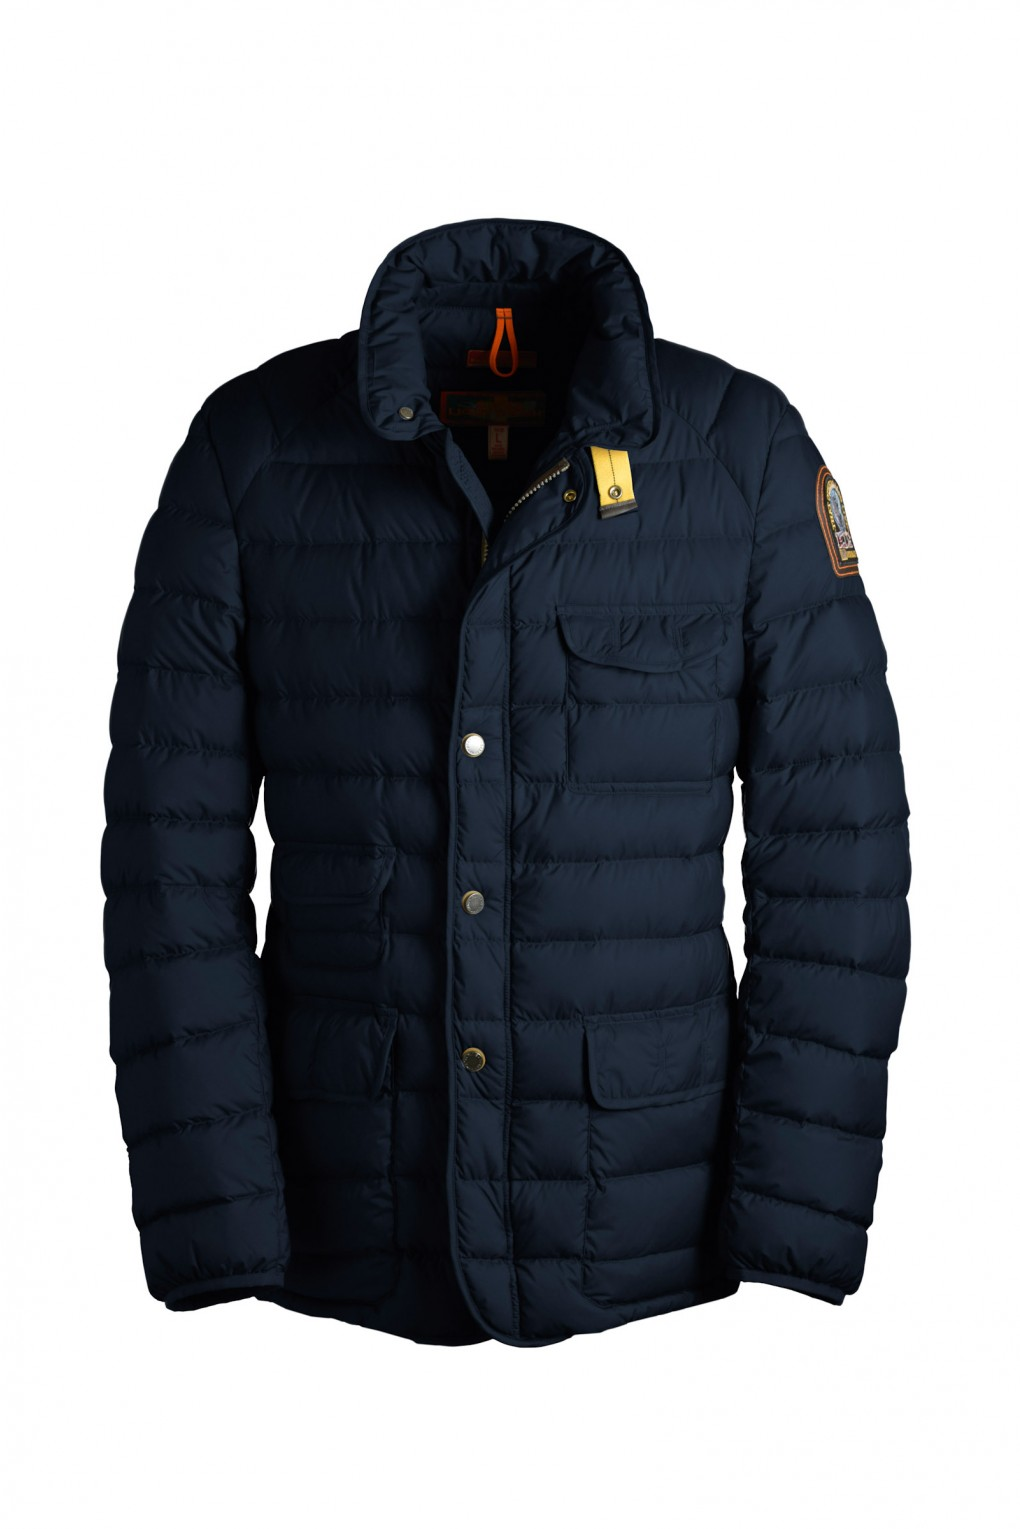 parajumpers ORSO man outerwear Marine